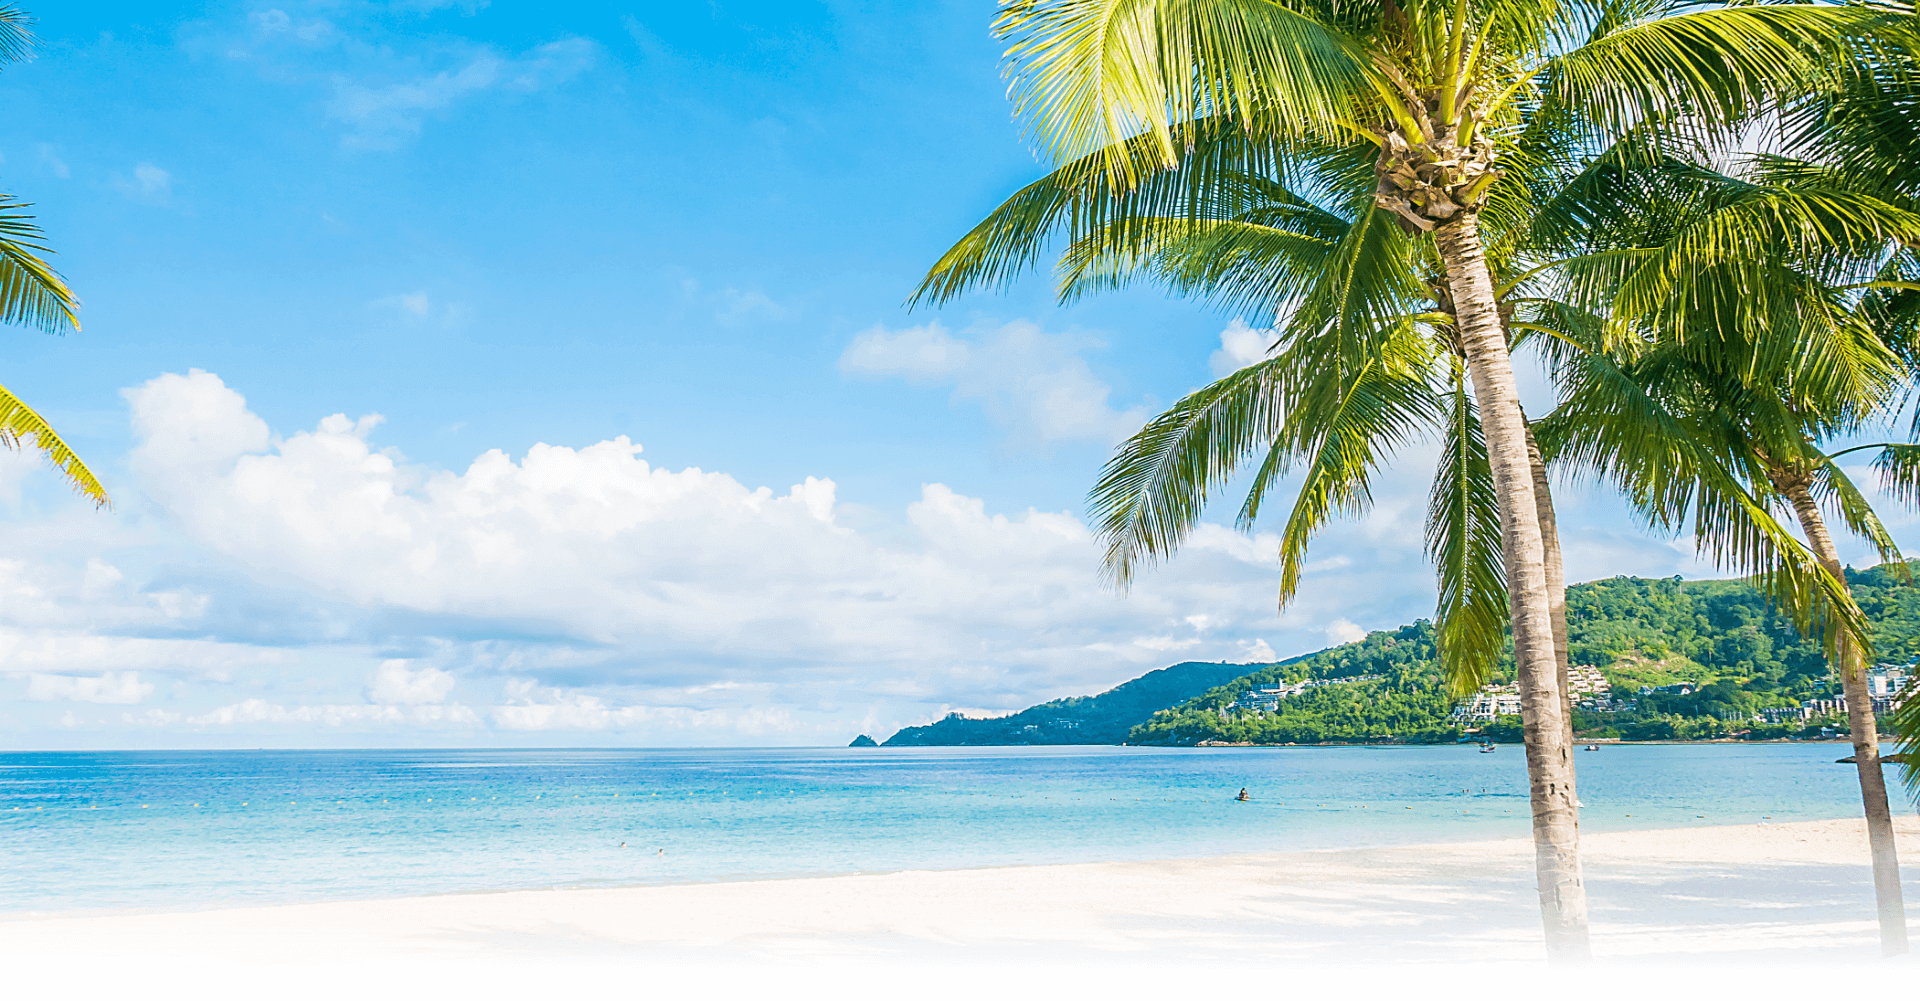 Pristine beach with palm tree, white sand, and cerulean seawater on a bright, sunny day.